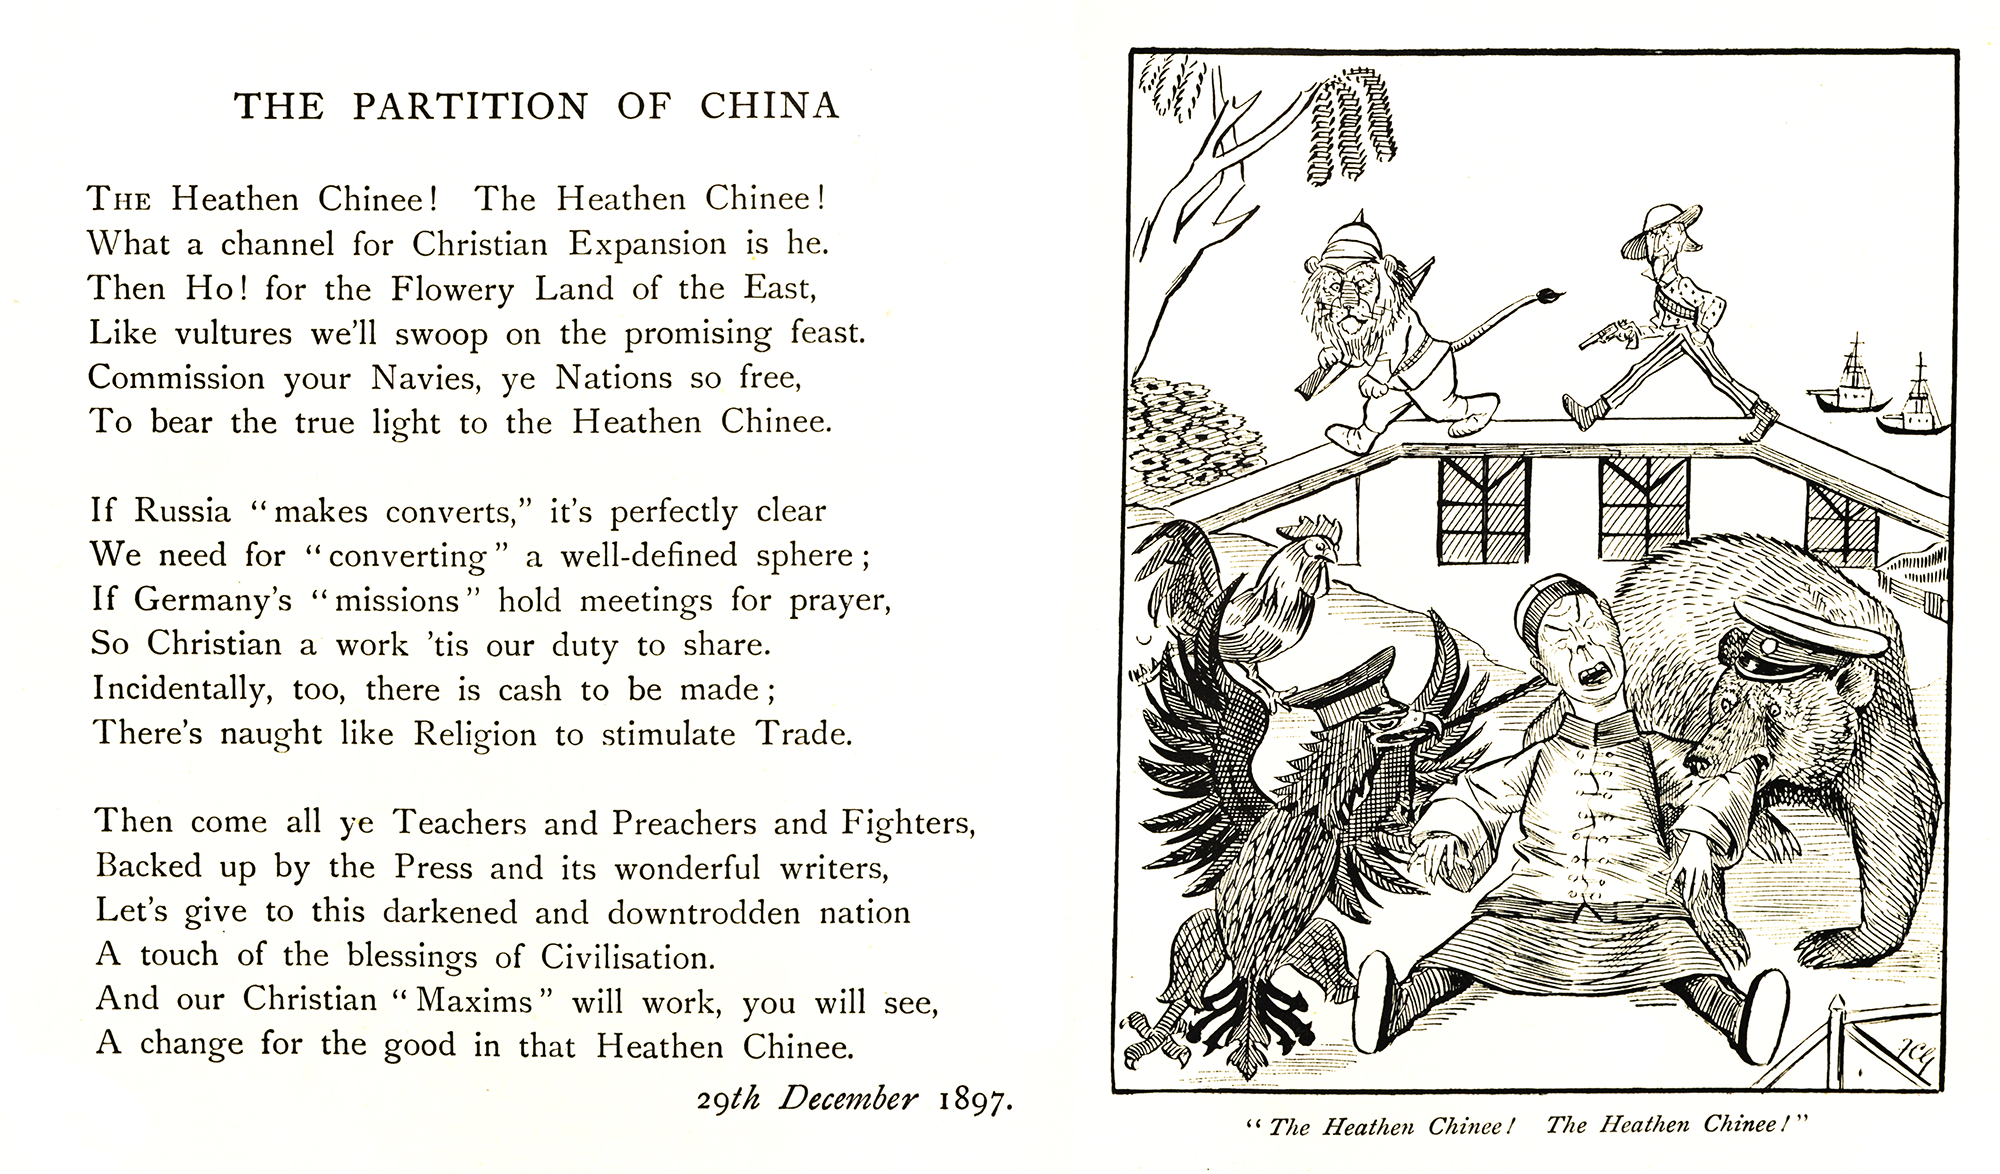 The Partition of China. British satirical poem by Sir Wilfrid Lawson